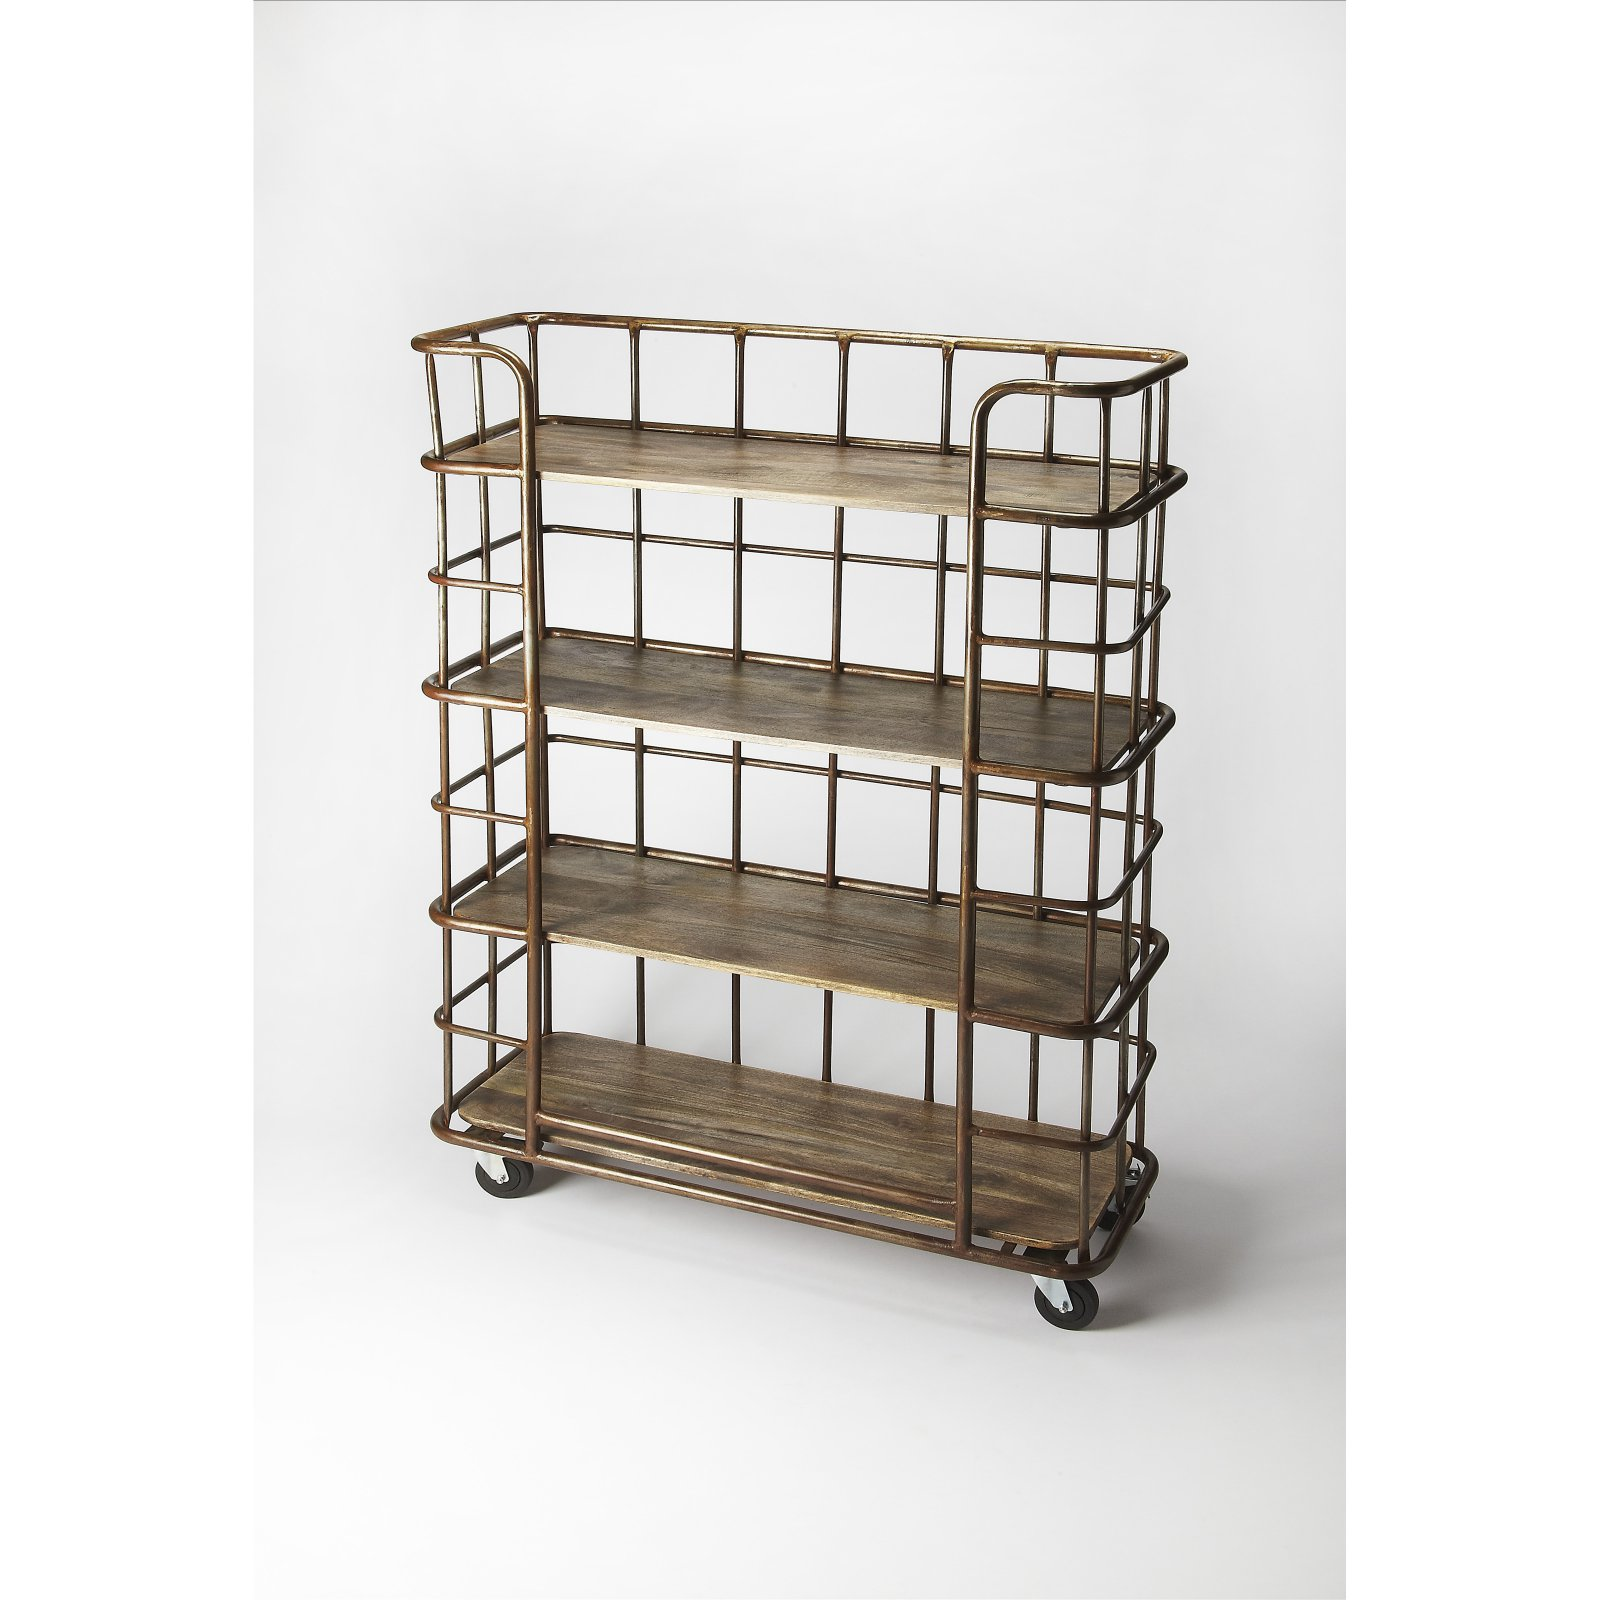 Butler Industrial Chic Antioch Etagere Bookcase Bronze by Butler Specialty